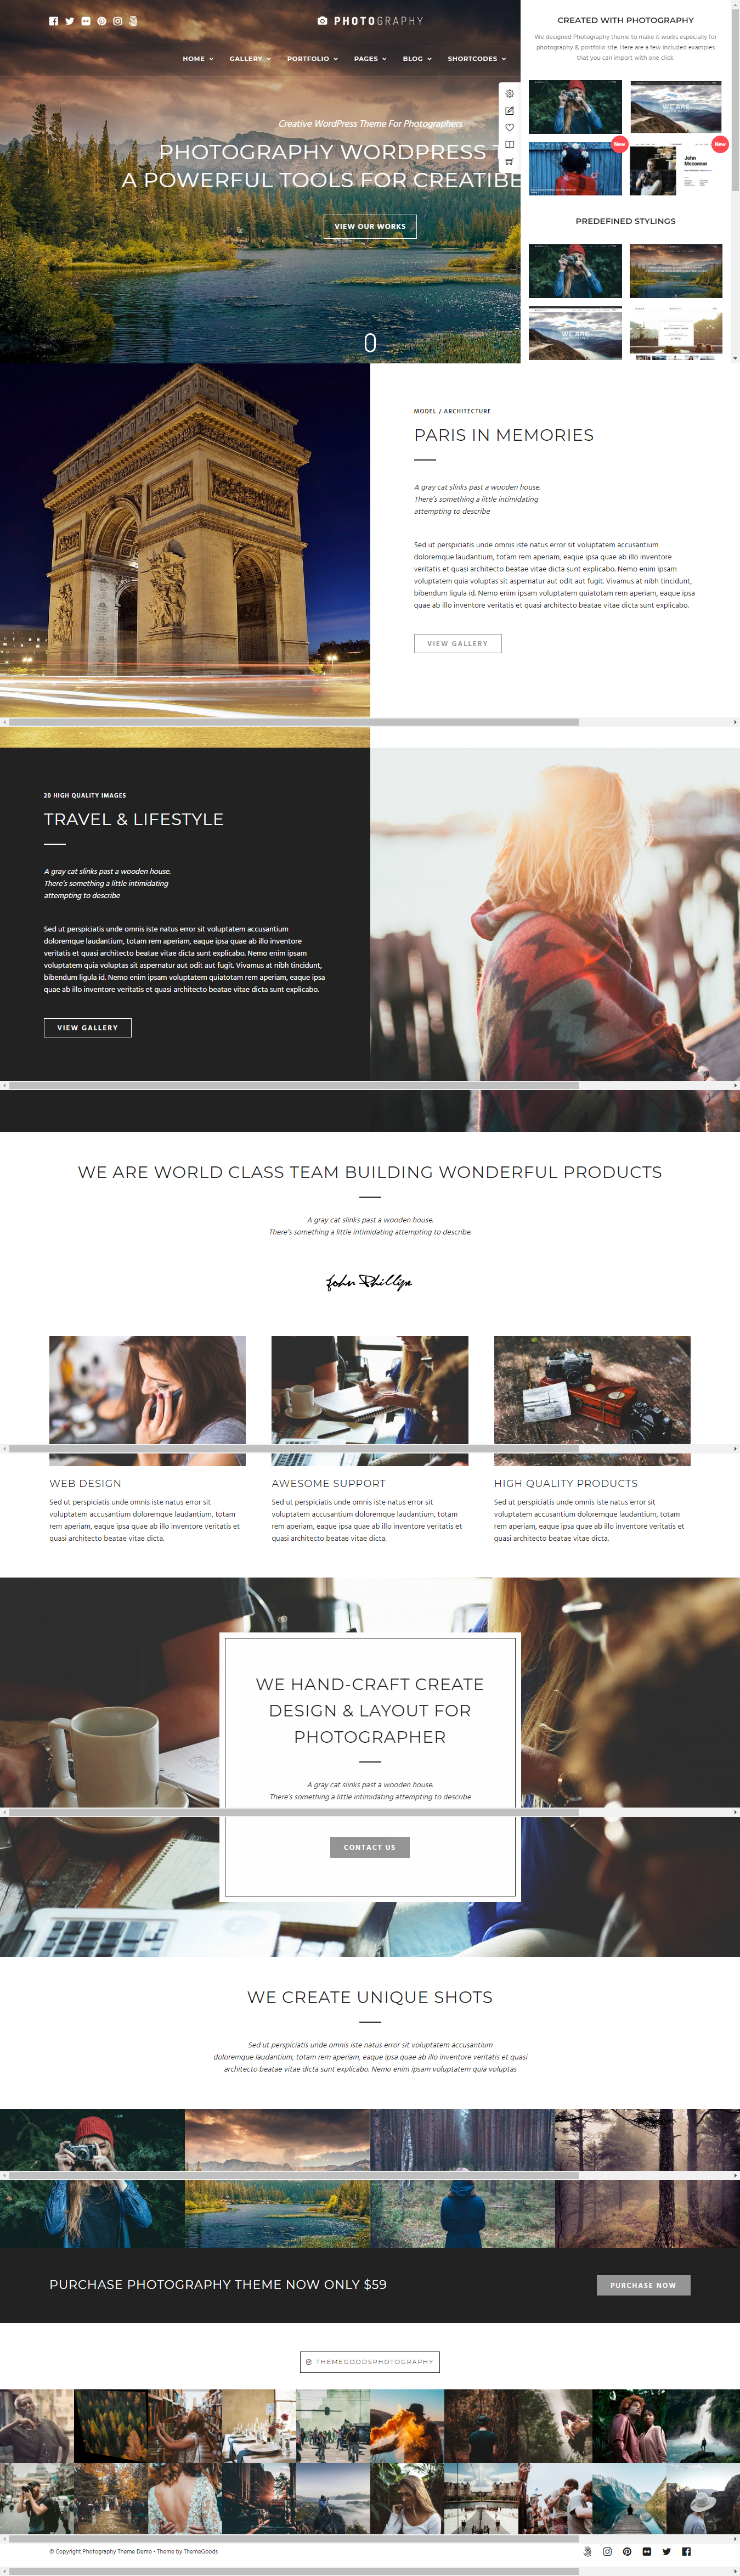 Photography - Premium Photography WordPress Themes and Templates